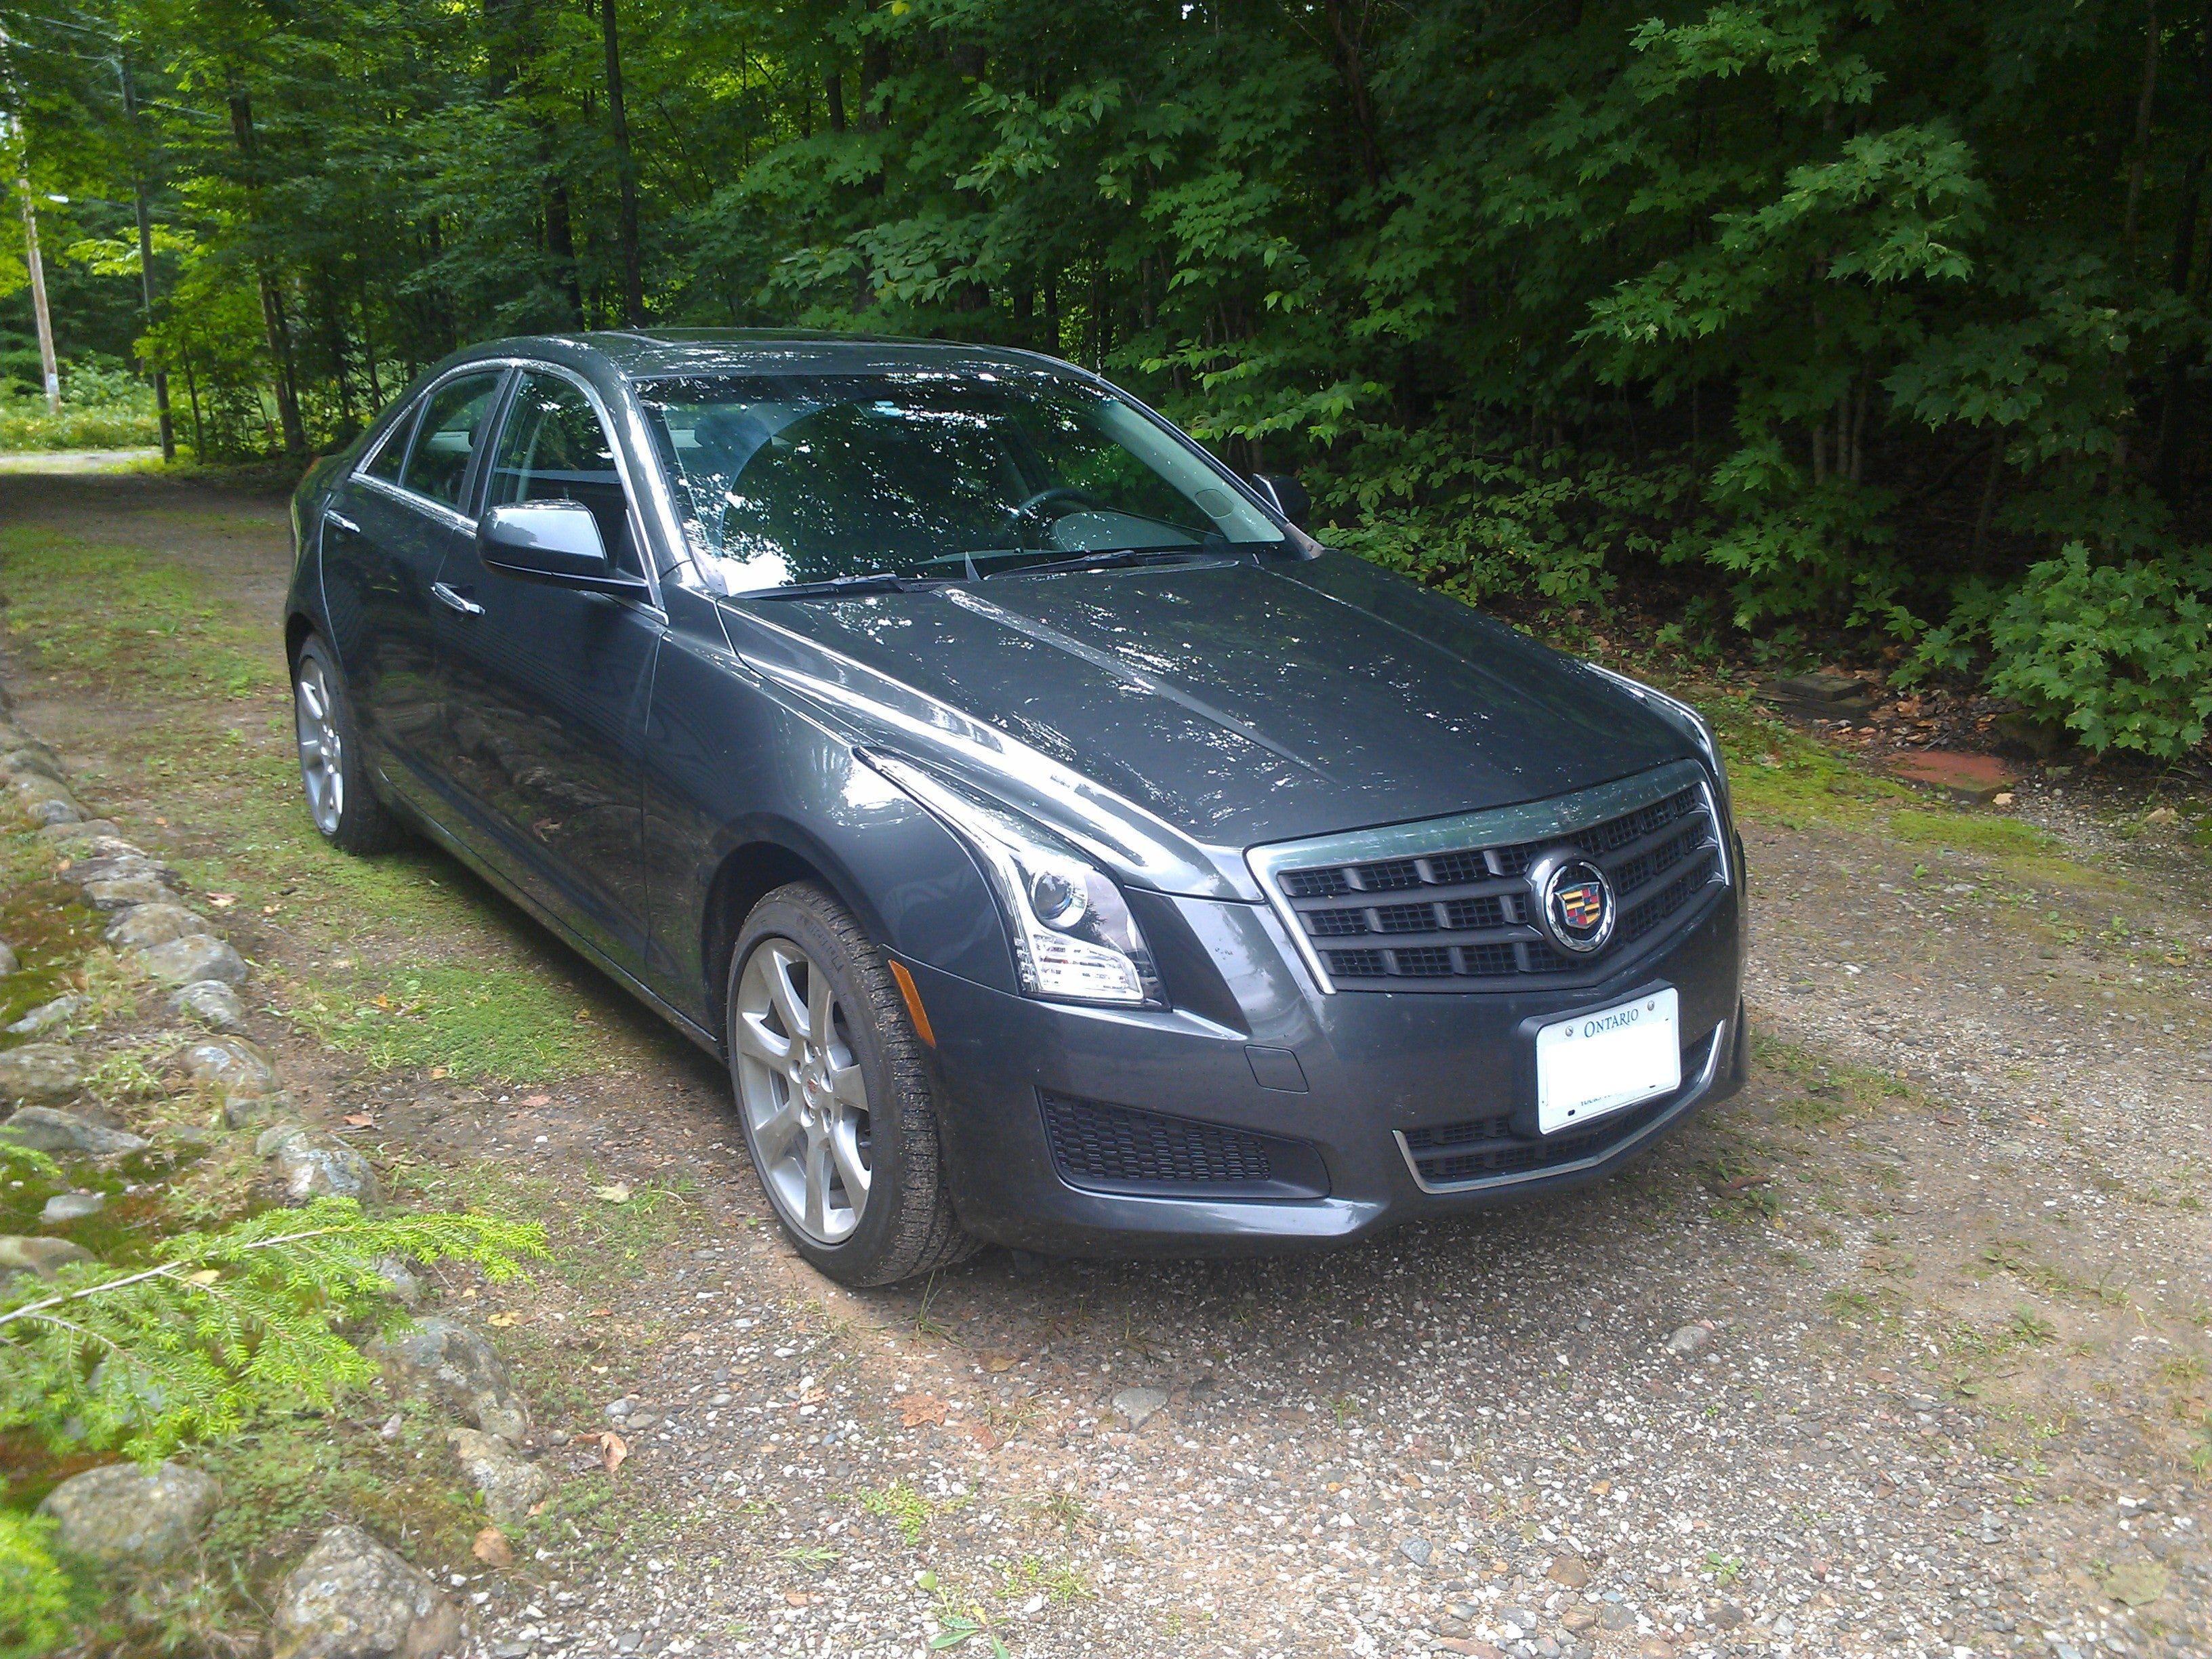 2014 cadillac ats 2 0t awd the opposite lock review. Black Bedroom Furniture Sets. Home Design Ideas